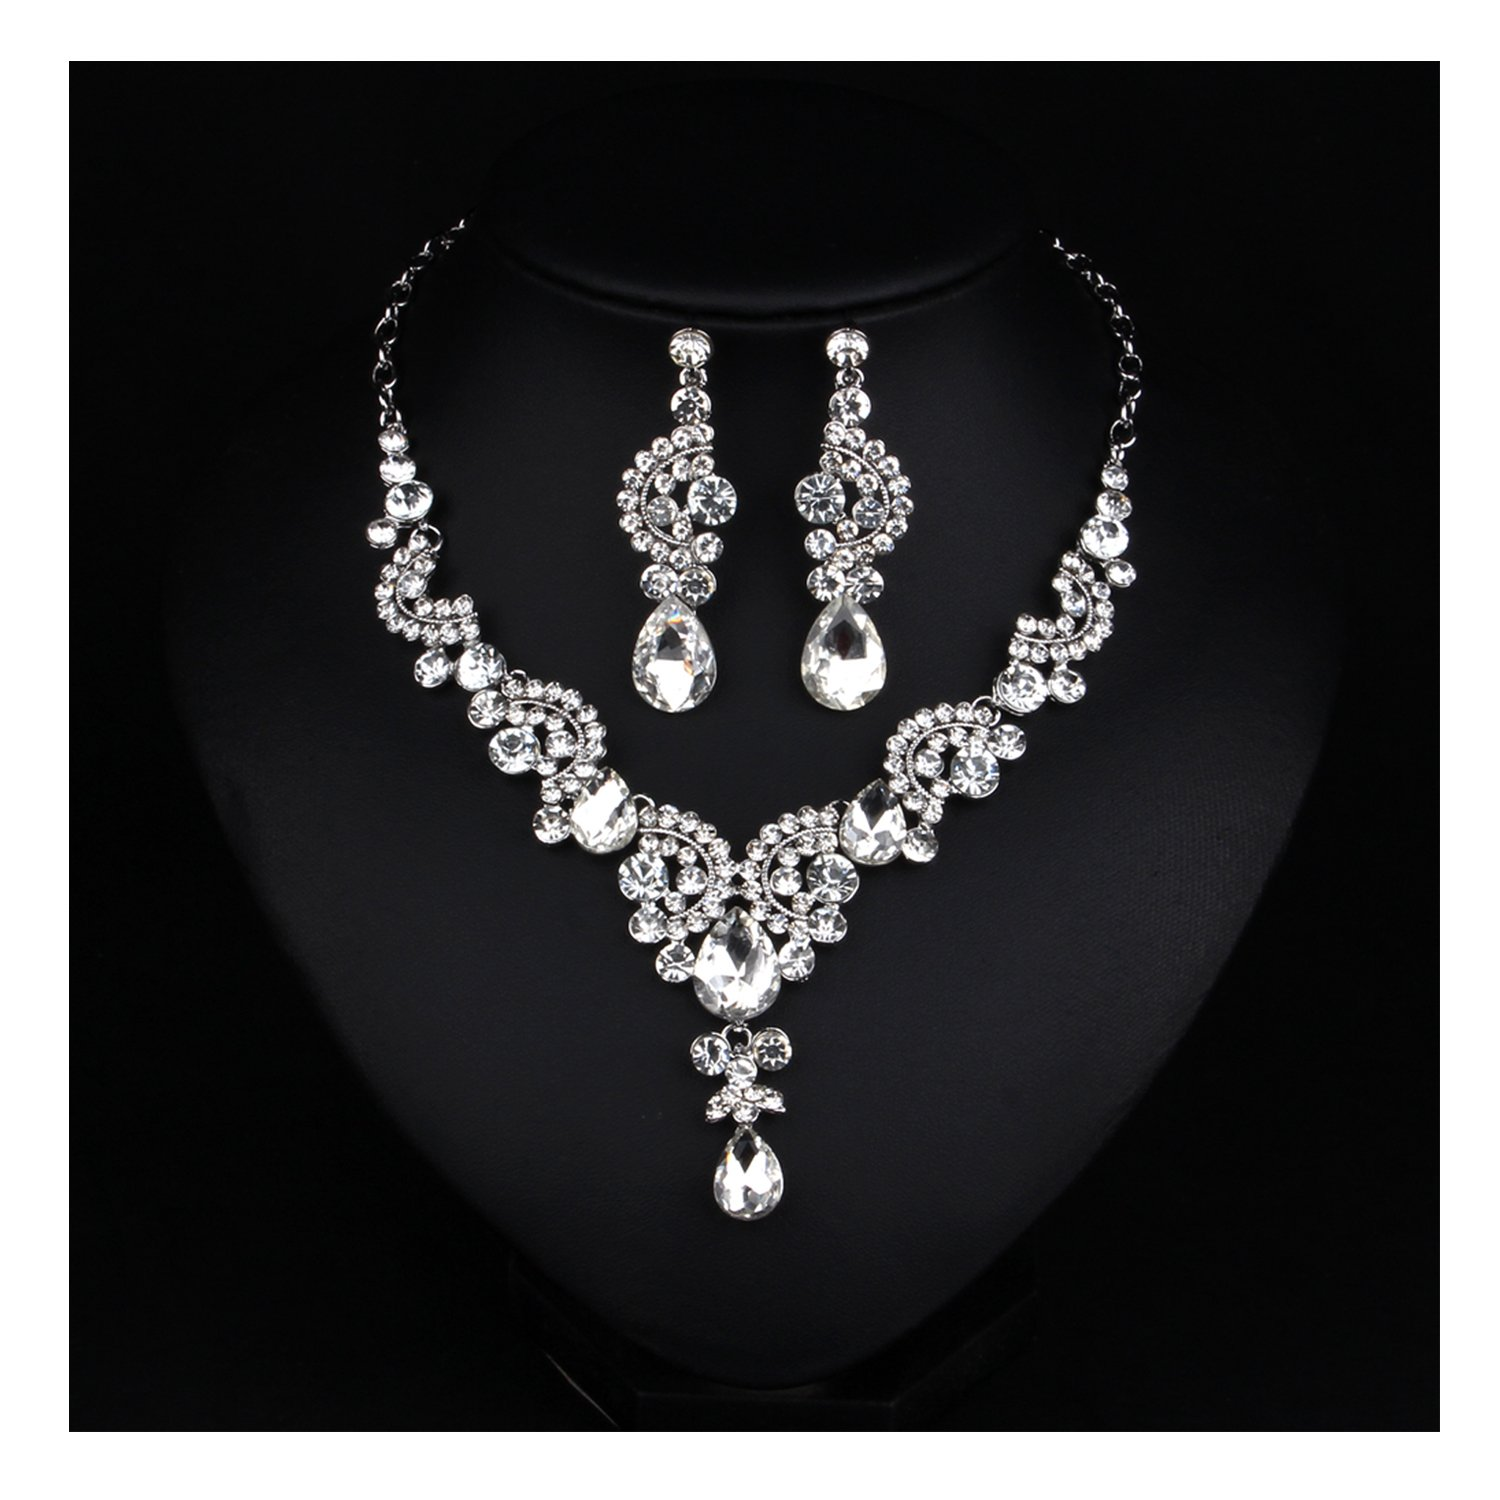 Hamer Costume Jewelry Fashion Crystal Choker Pendant Statement Charm Necklace and Earrings LTD N703